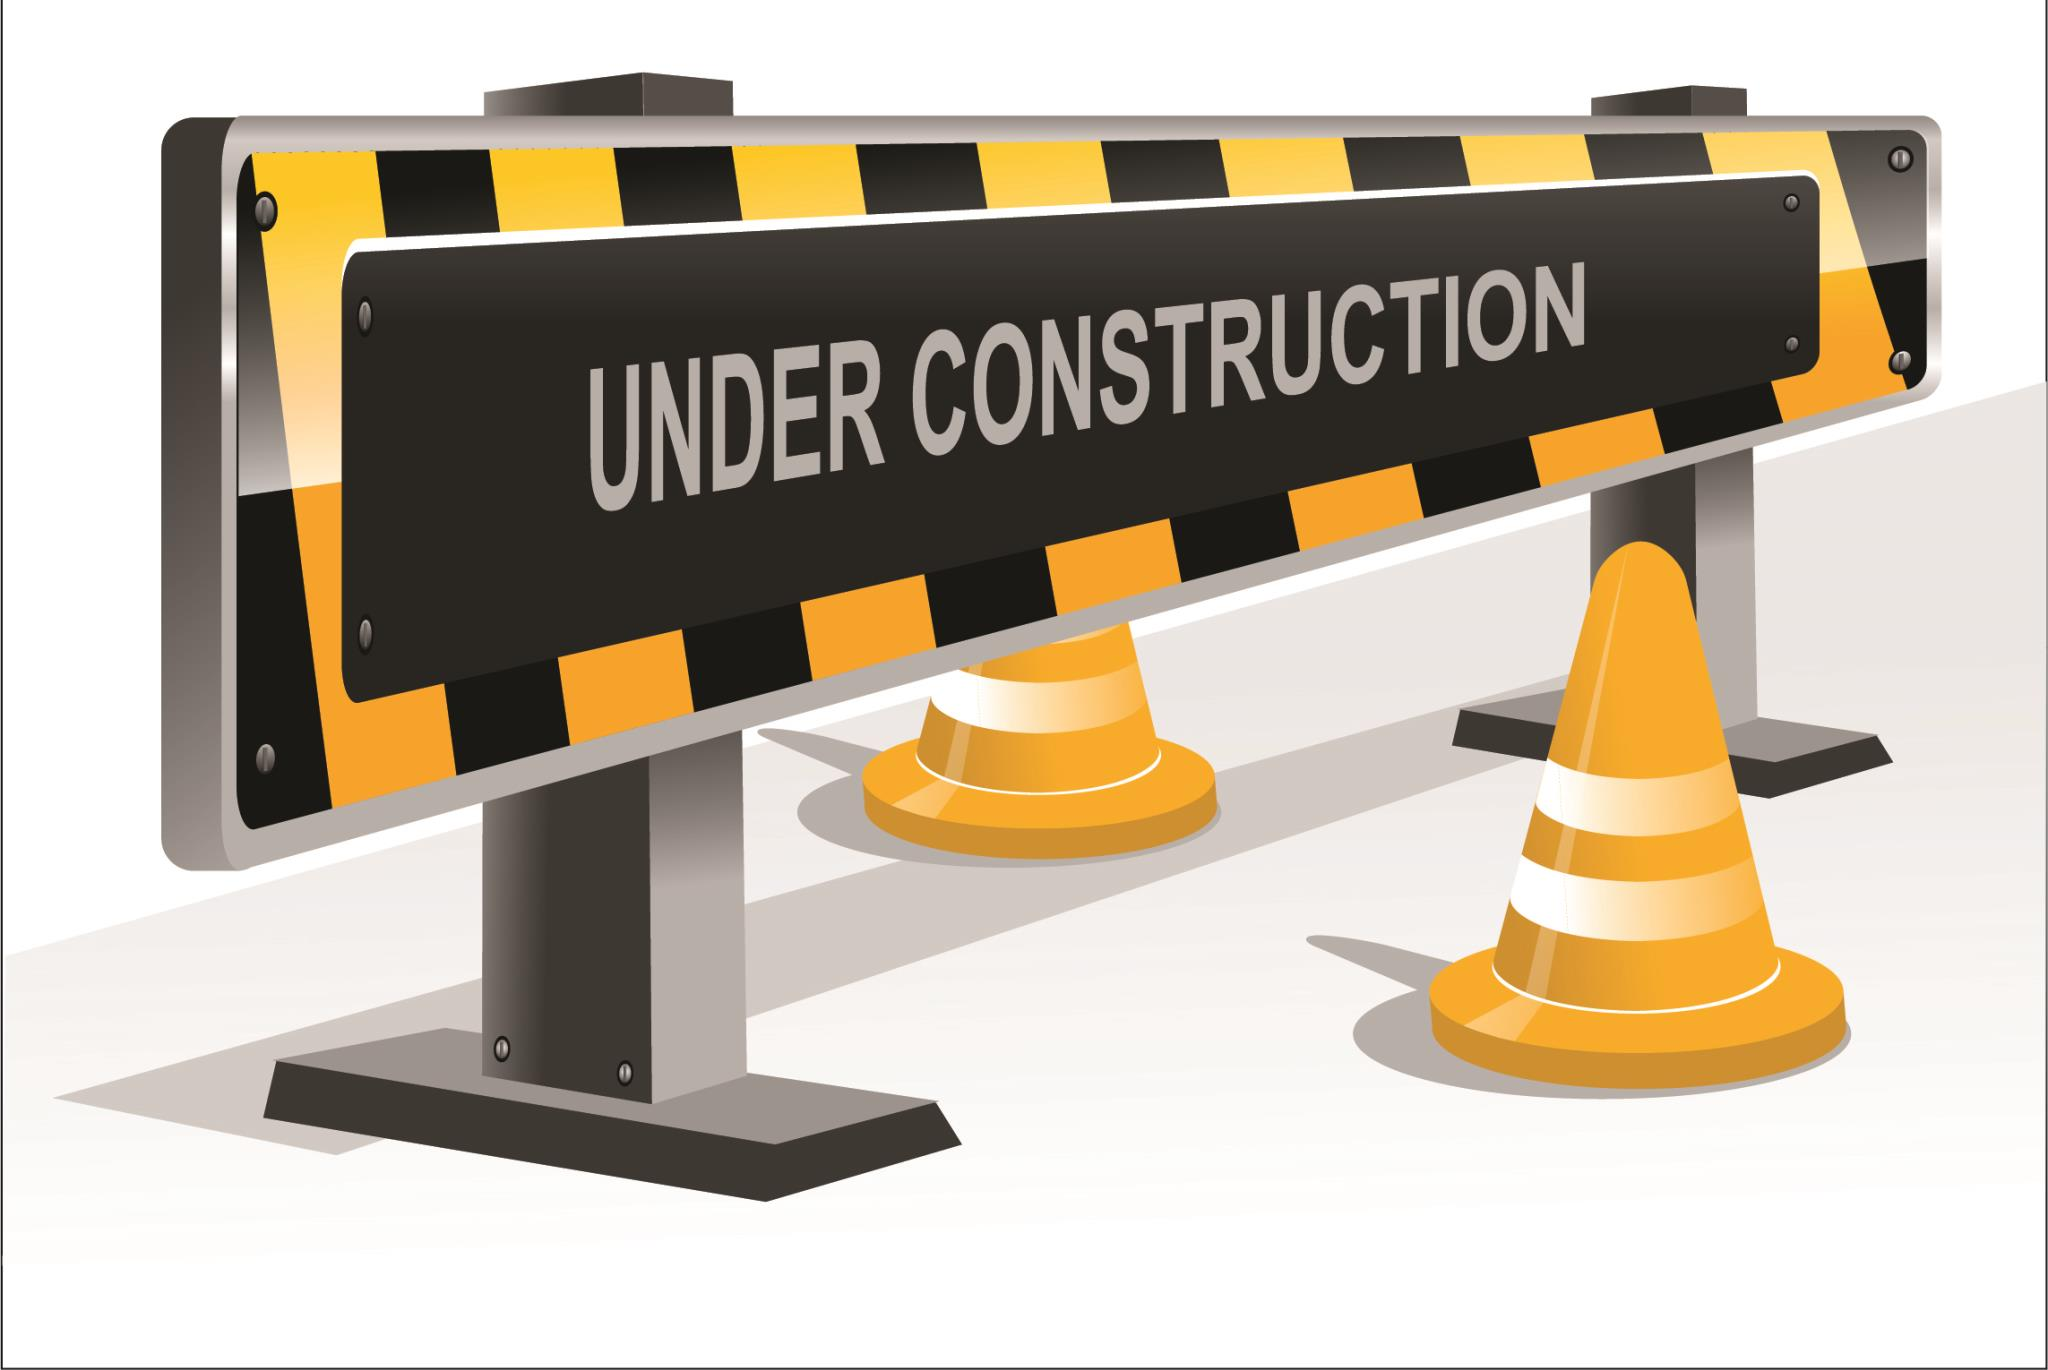 Construction sign with cones